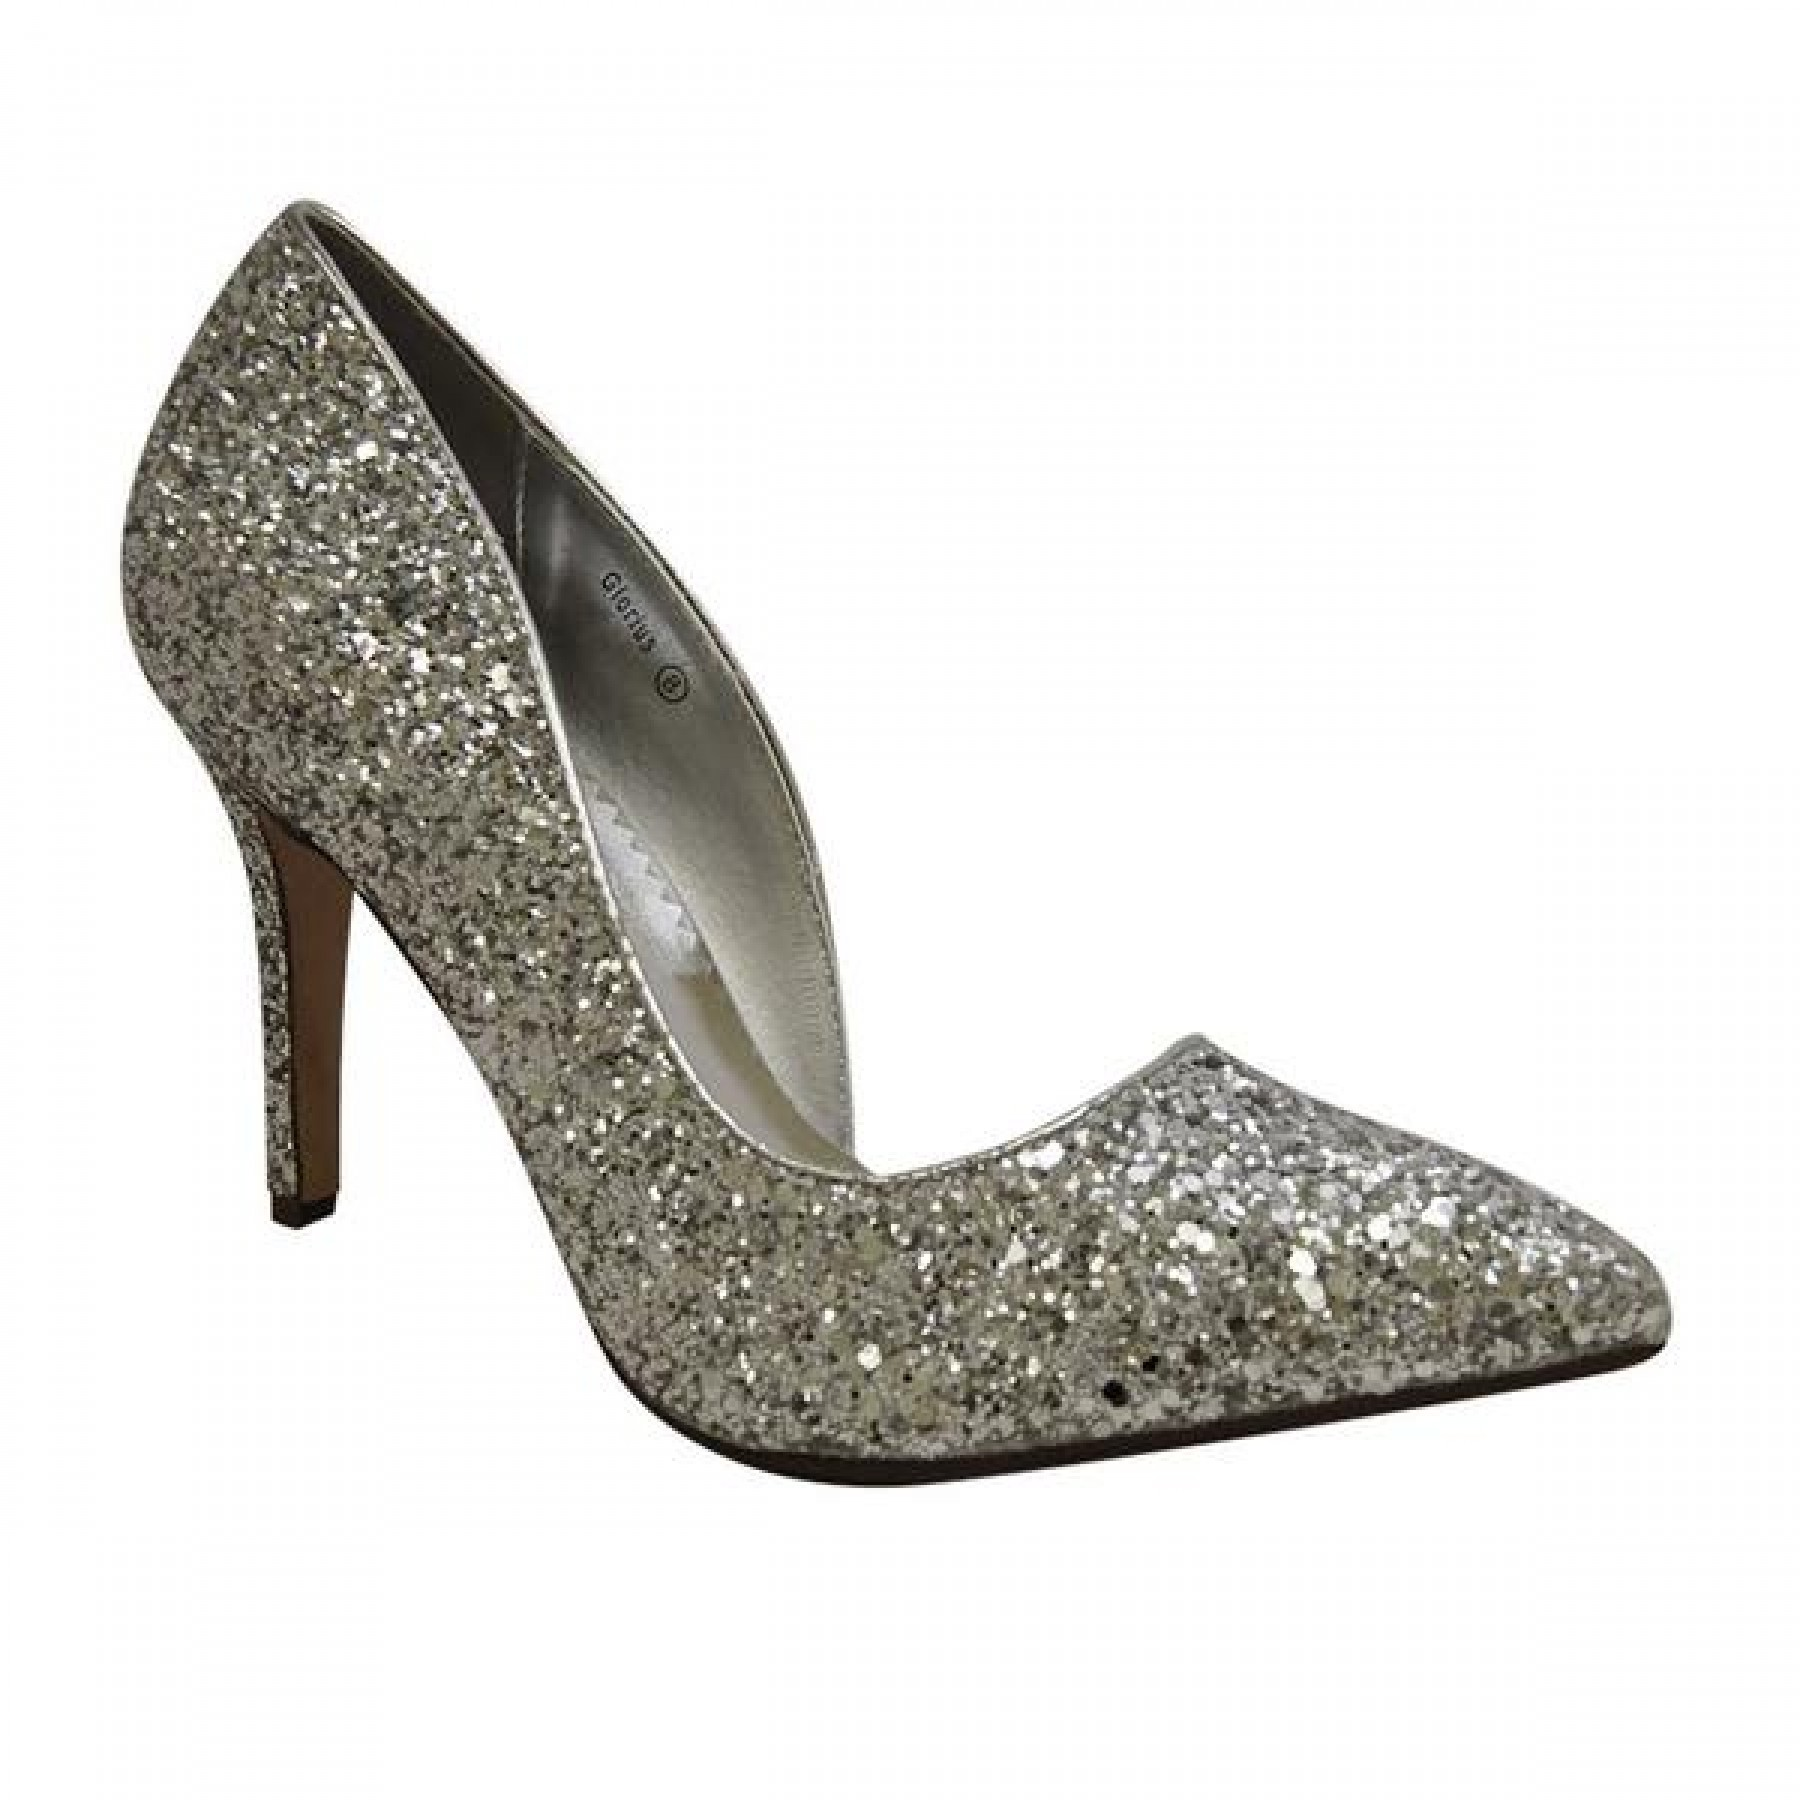 Women's Silver Manmade Glorius Pointed-Tee Pump with Glittering Upper